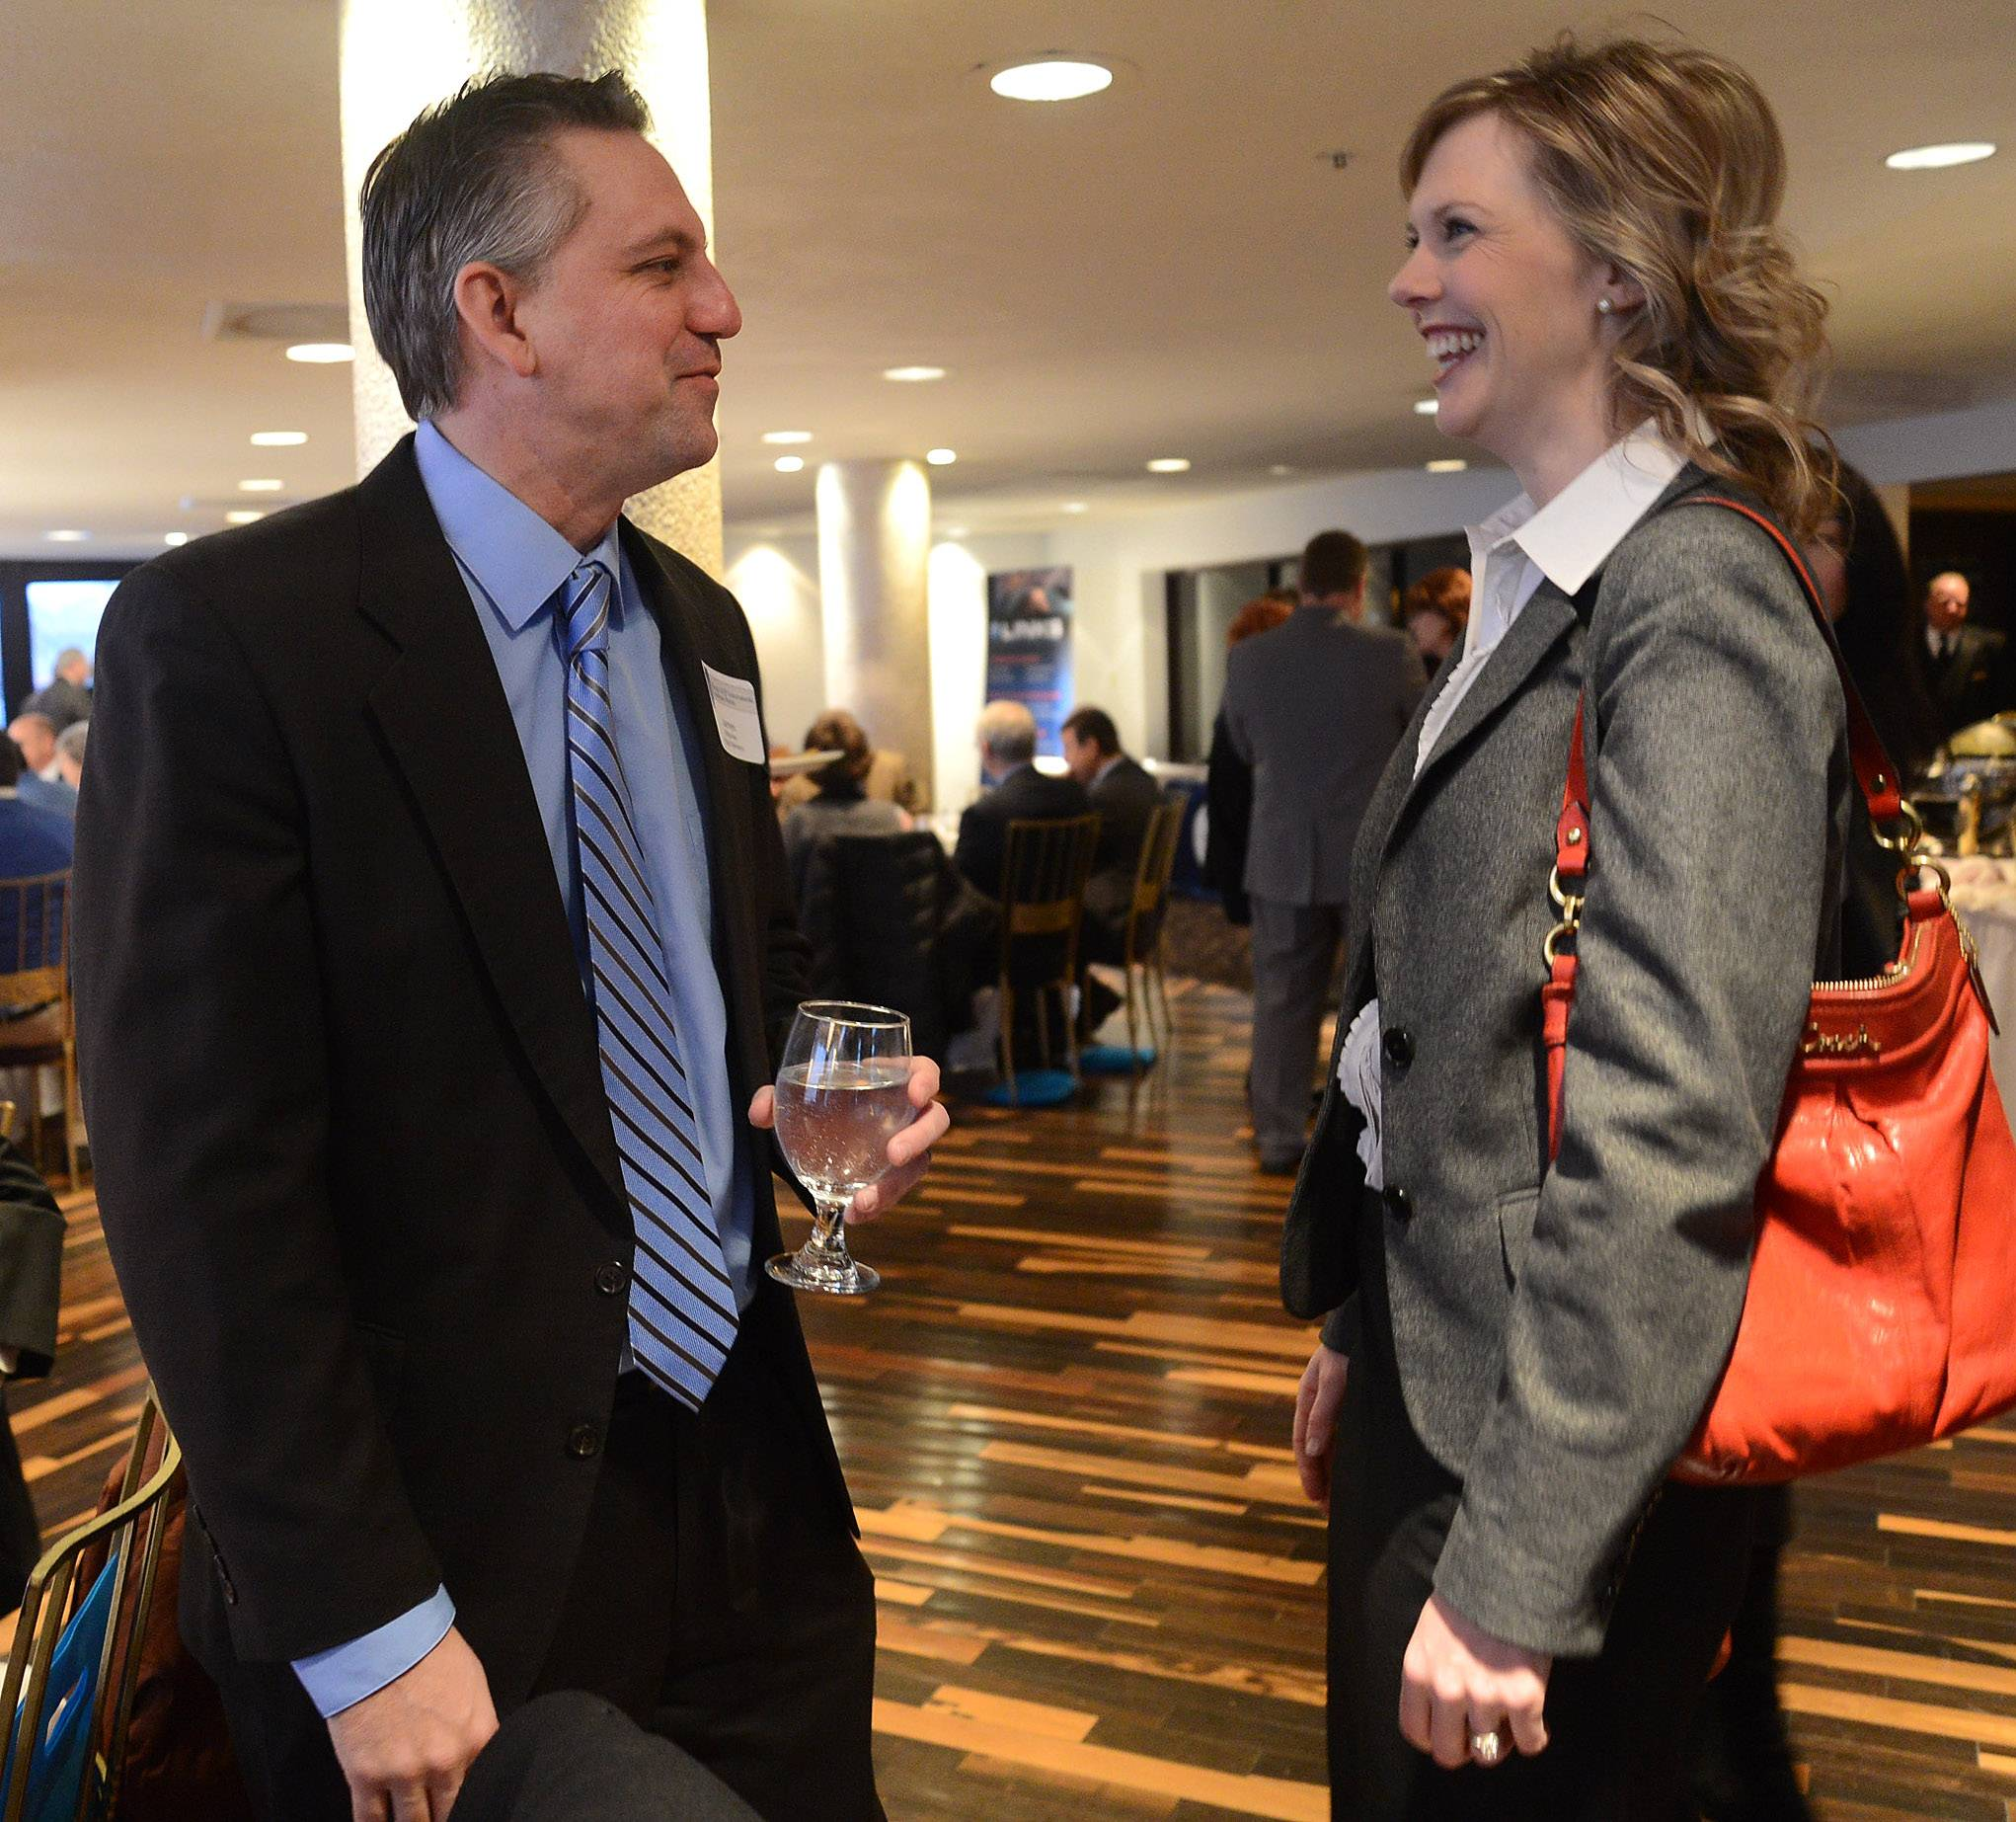 James Urbaniec spoke at an event with Lisa Gilbert, who has been named president of the Schaumburg Business Association.